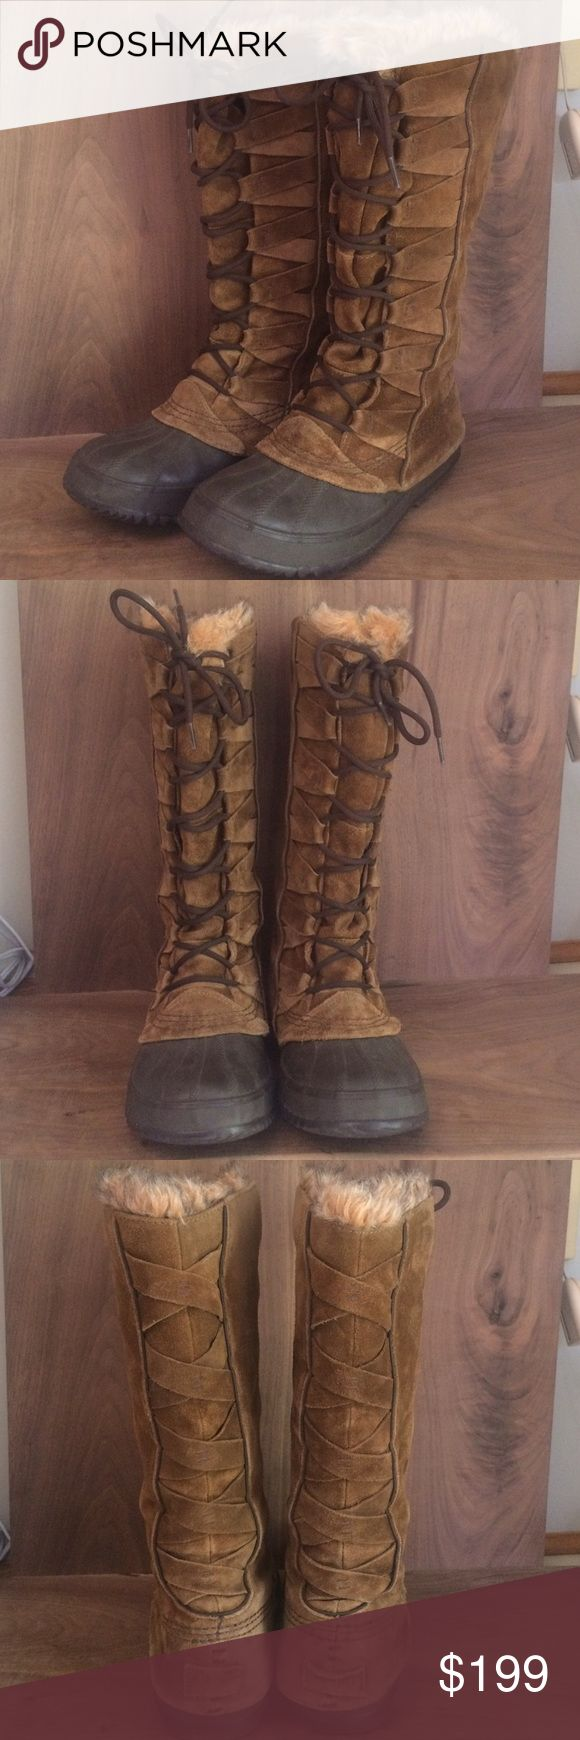 Sorel Cate of Alexandria Lace Up Winter Boots 8 Sorel Cate of Alexandria lace up waterproof suede women's winter boots. Size 8. Removable recycled felt lining with faux fur collar. Super cute boots. Some wear but they have plenty of life left. Hard to find. No trades. Sorel Shoes Winter & Rain Boots